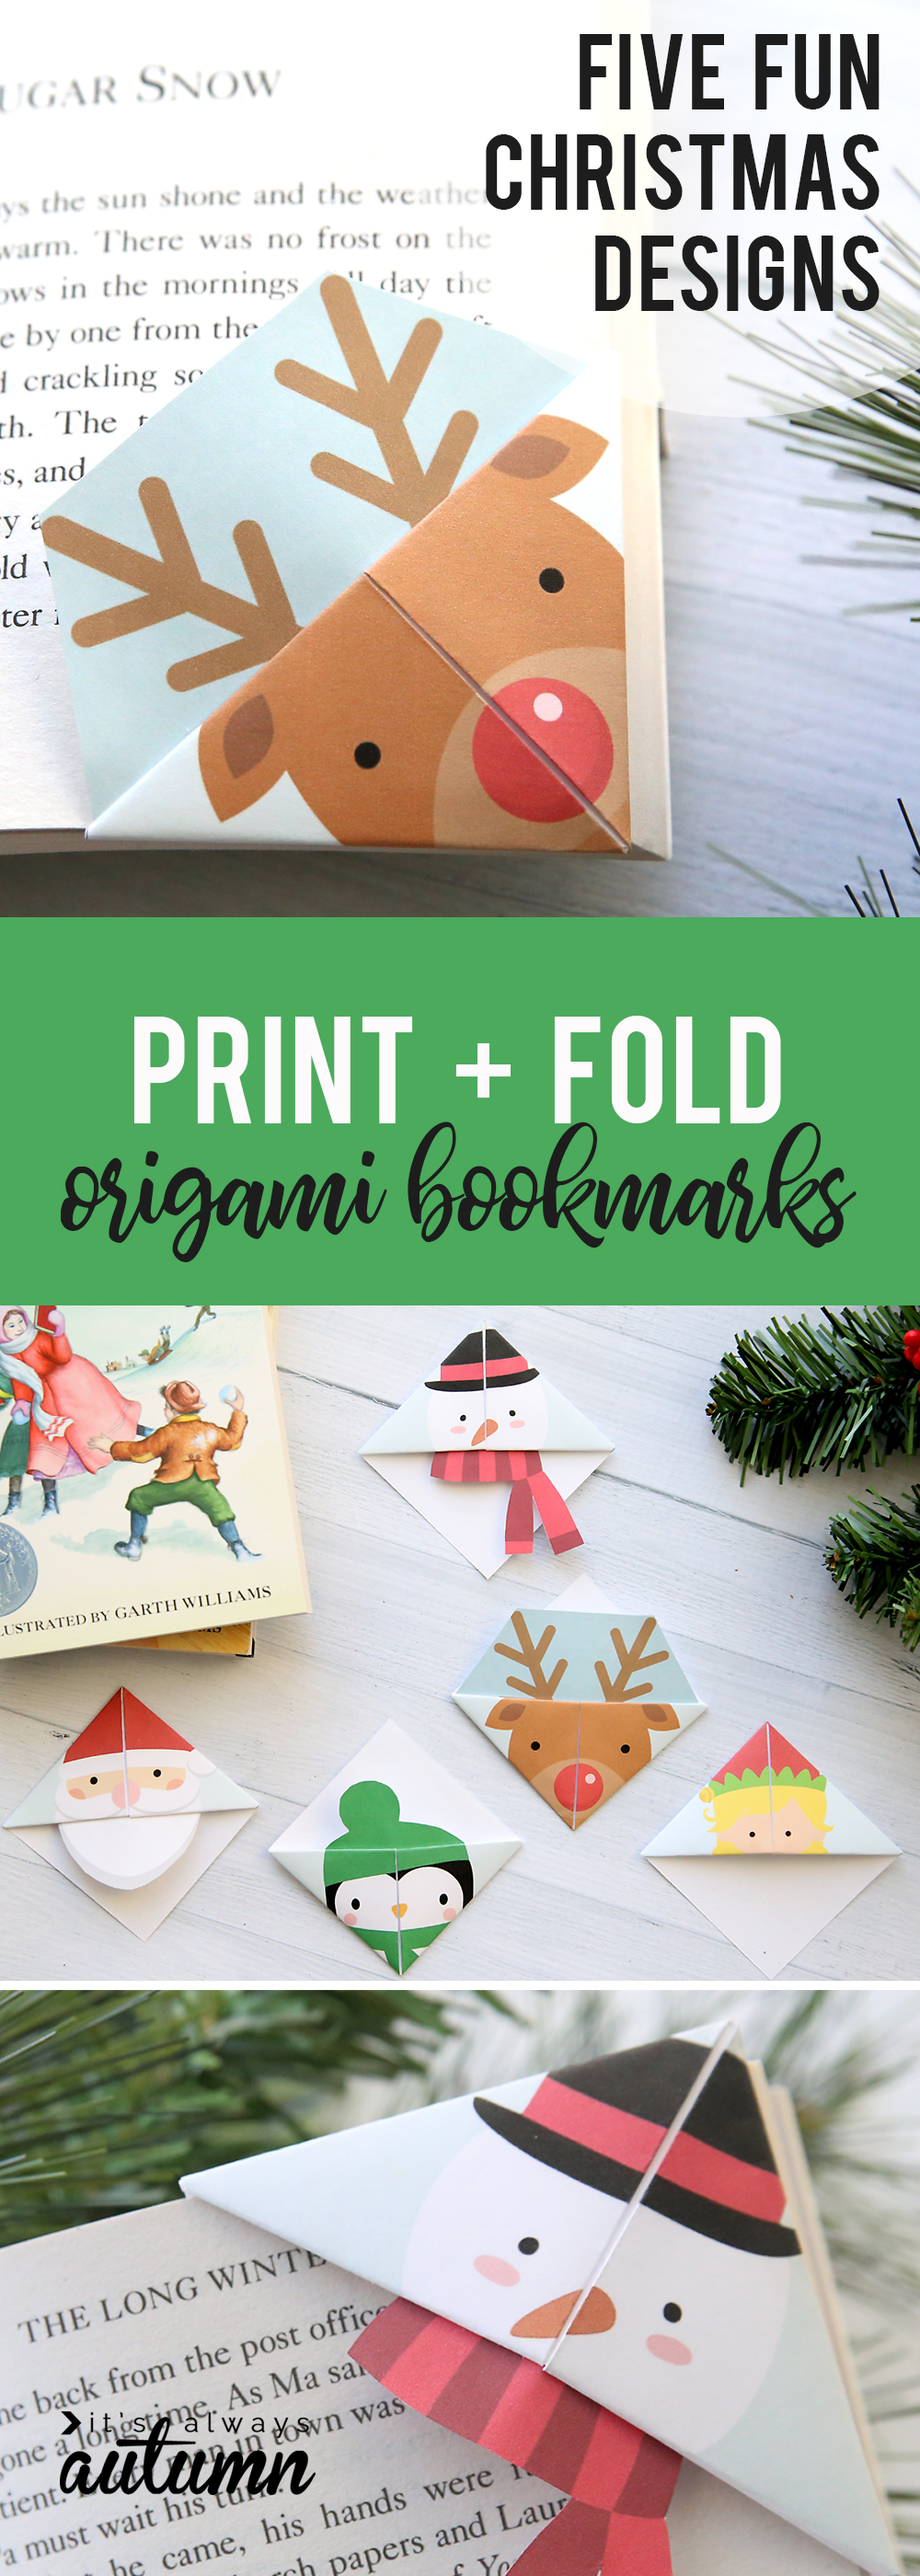 simple origami instructions to print